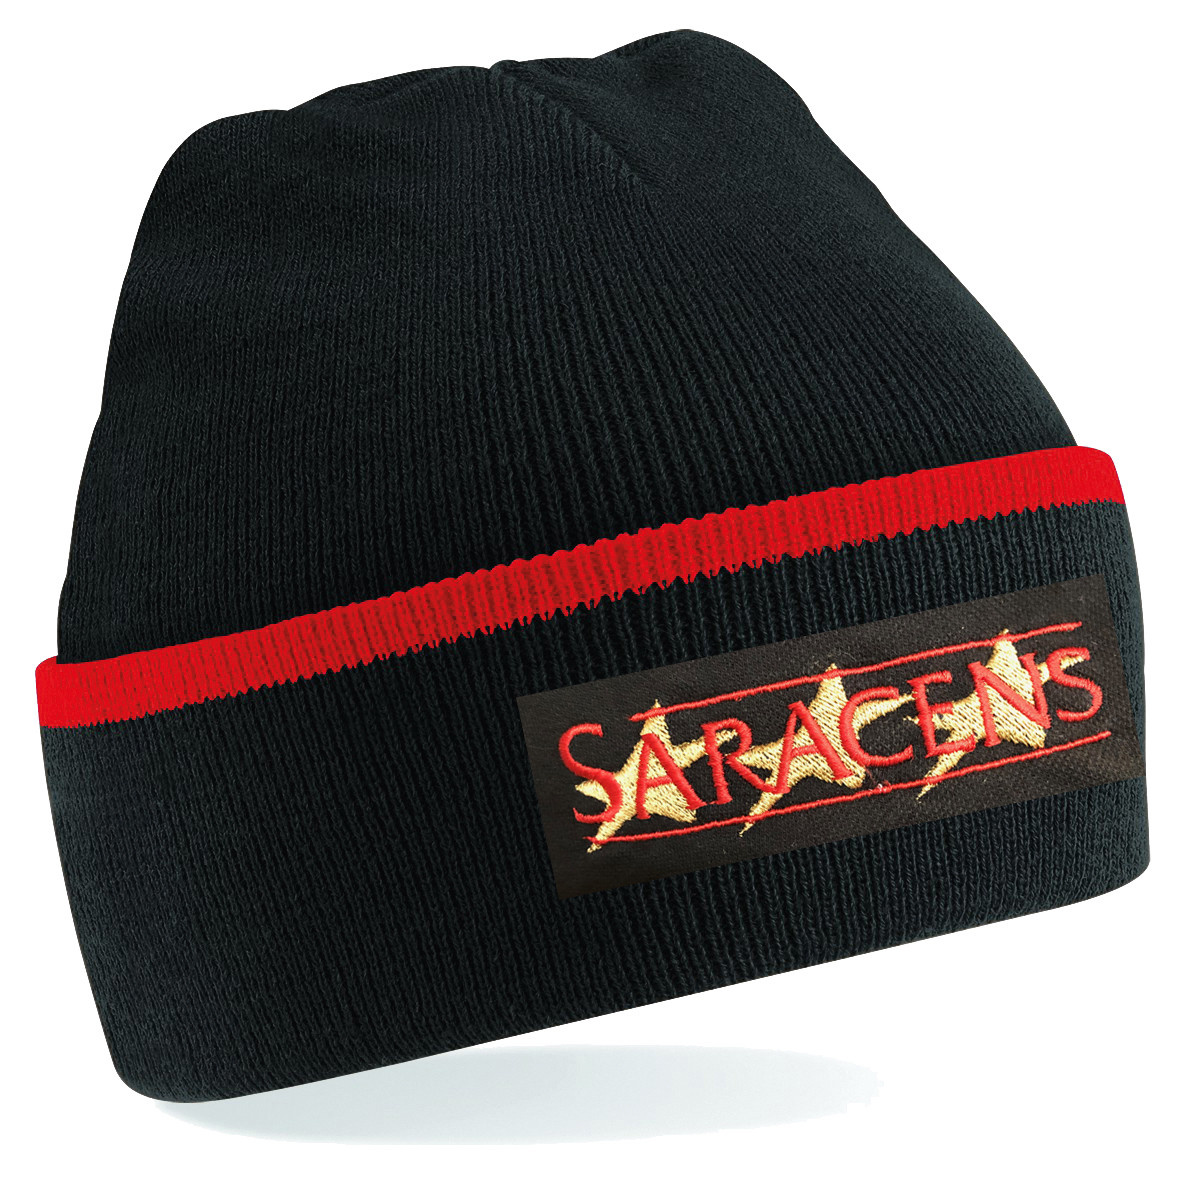 Premium Force Adults Triple Champs 3 Star Beanie